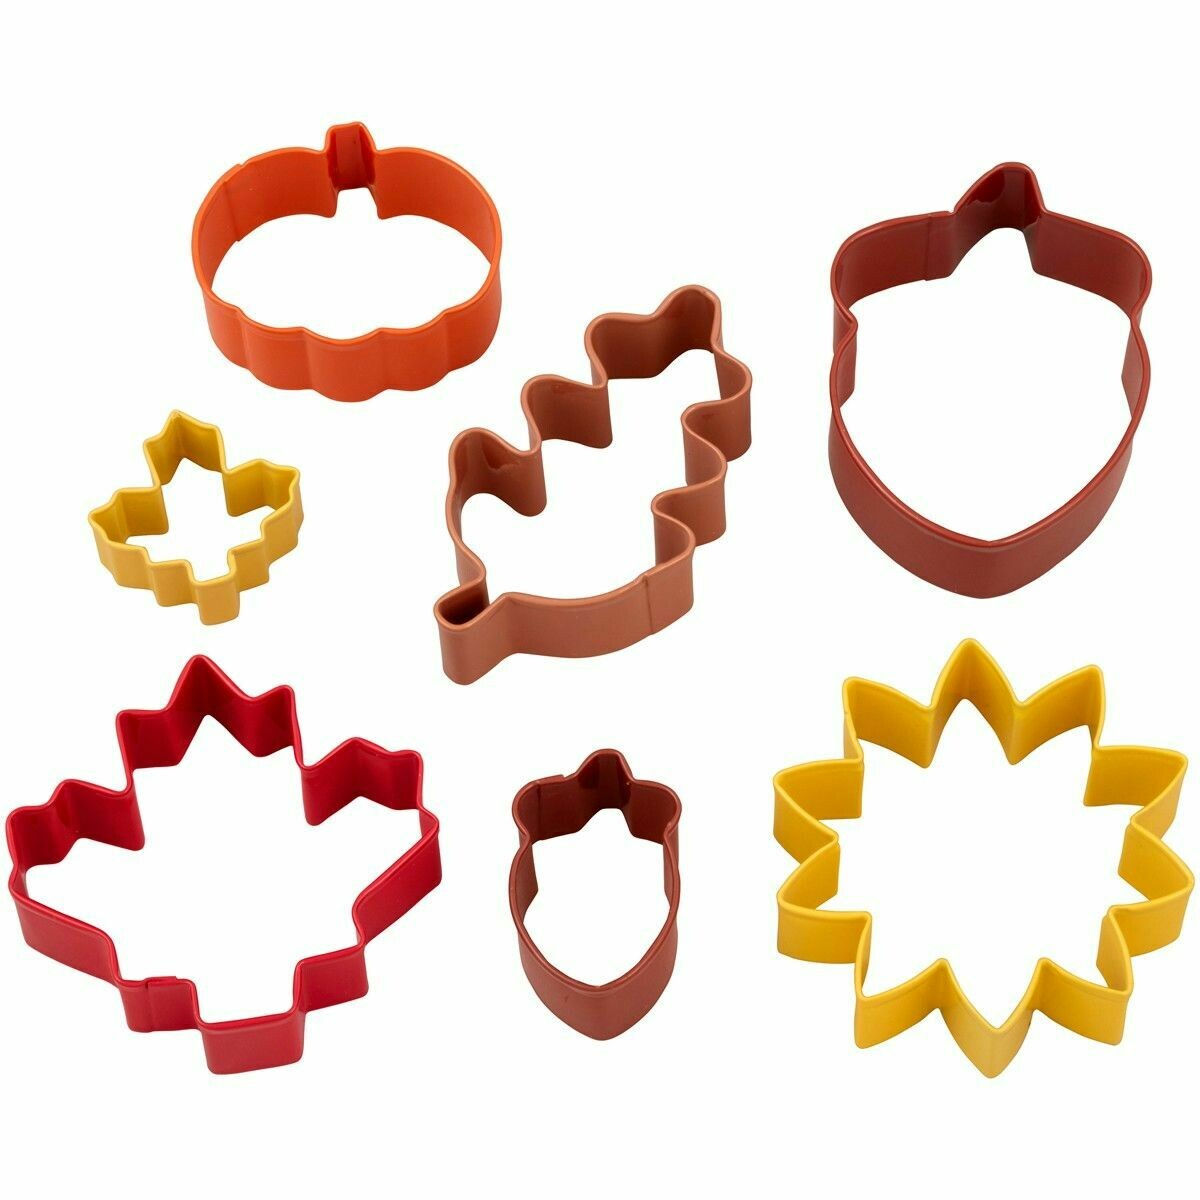 Wilton Cookie Cutter Set of 7 -AUTUMN - Σετ 7τεμ Κουπ πατ με φθινοπωρινό θέμα